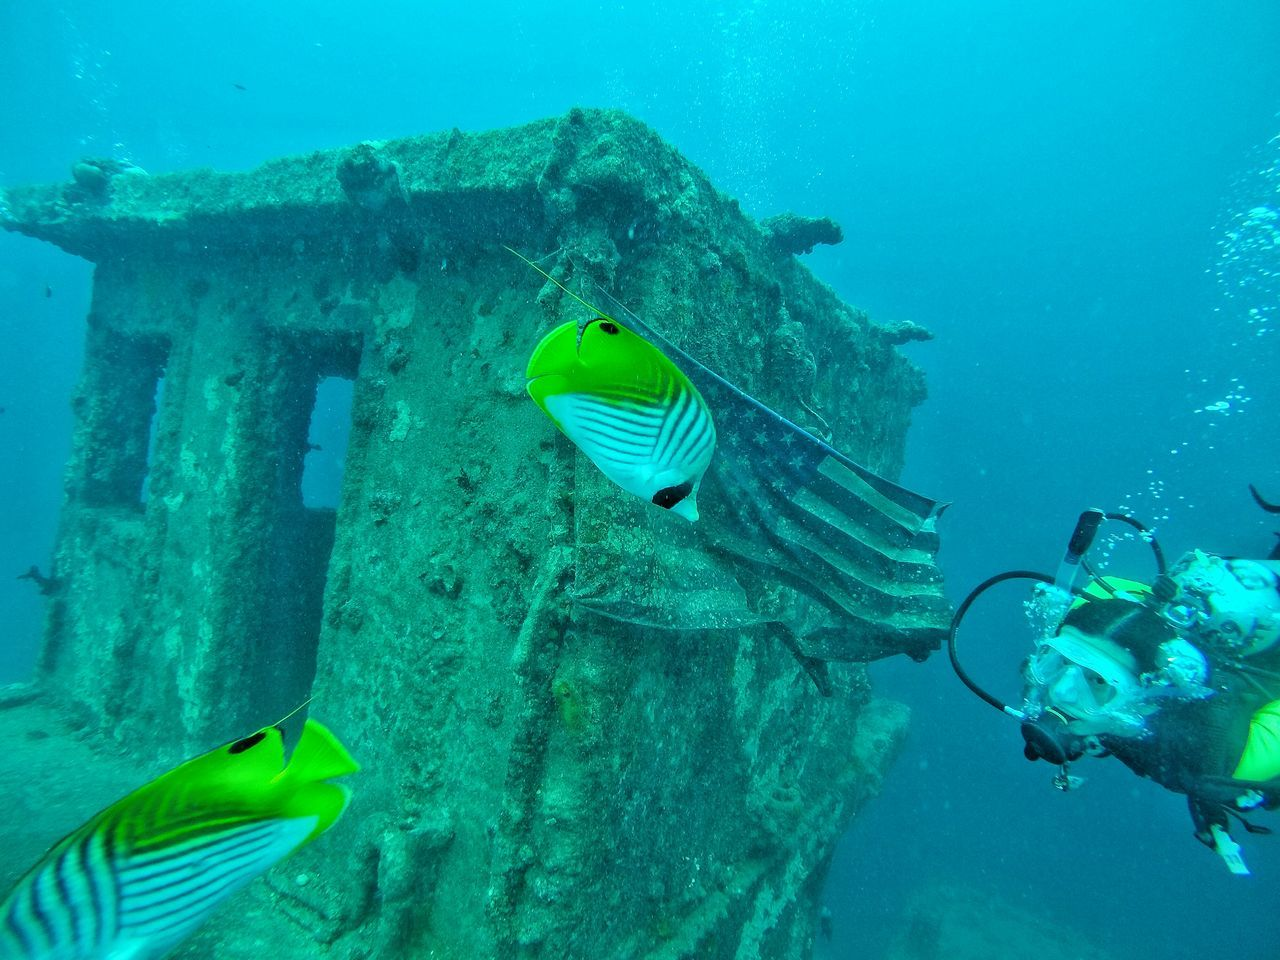 Man Scuba Diving By American Flag On Shipwreck With Fish In Sea